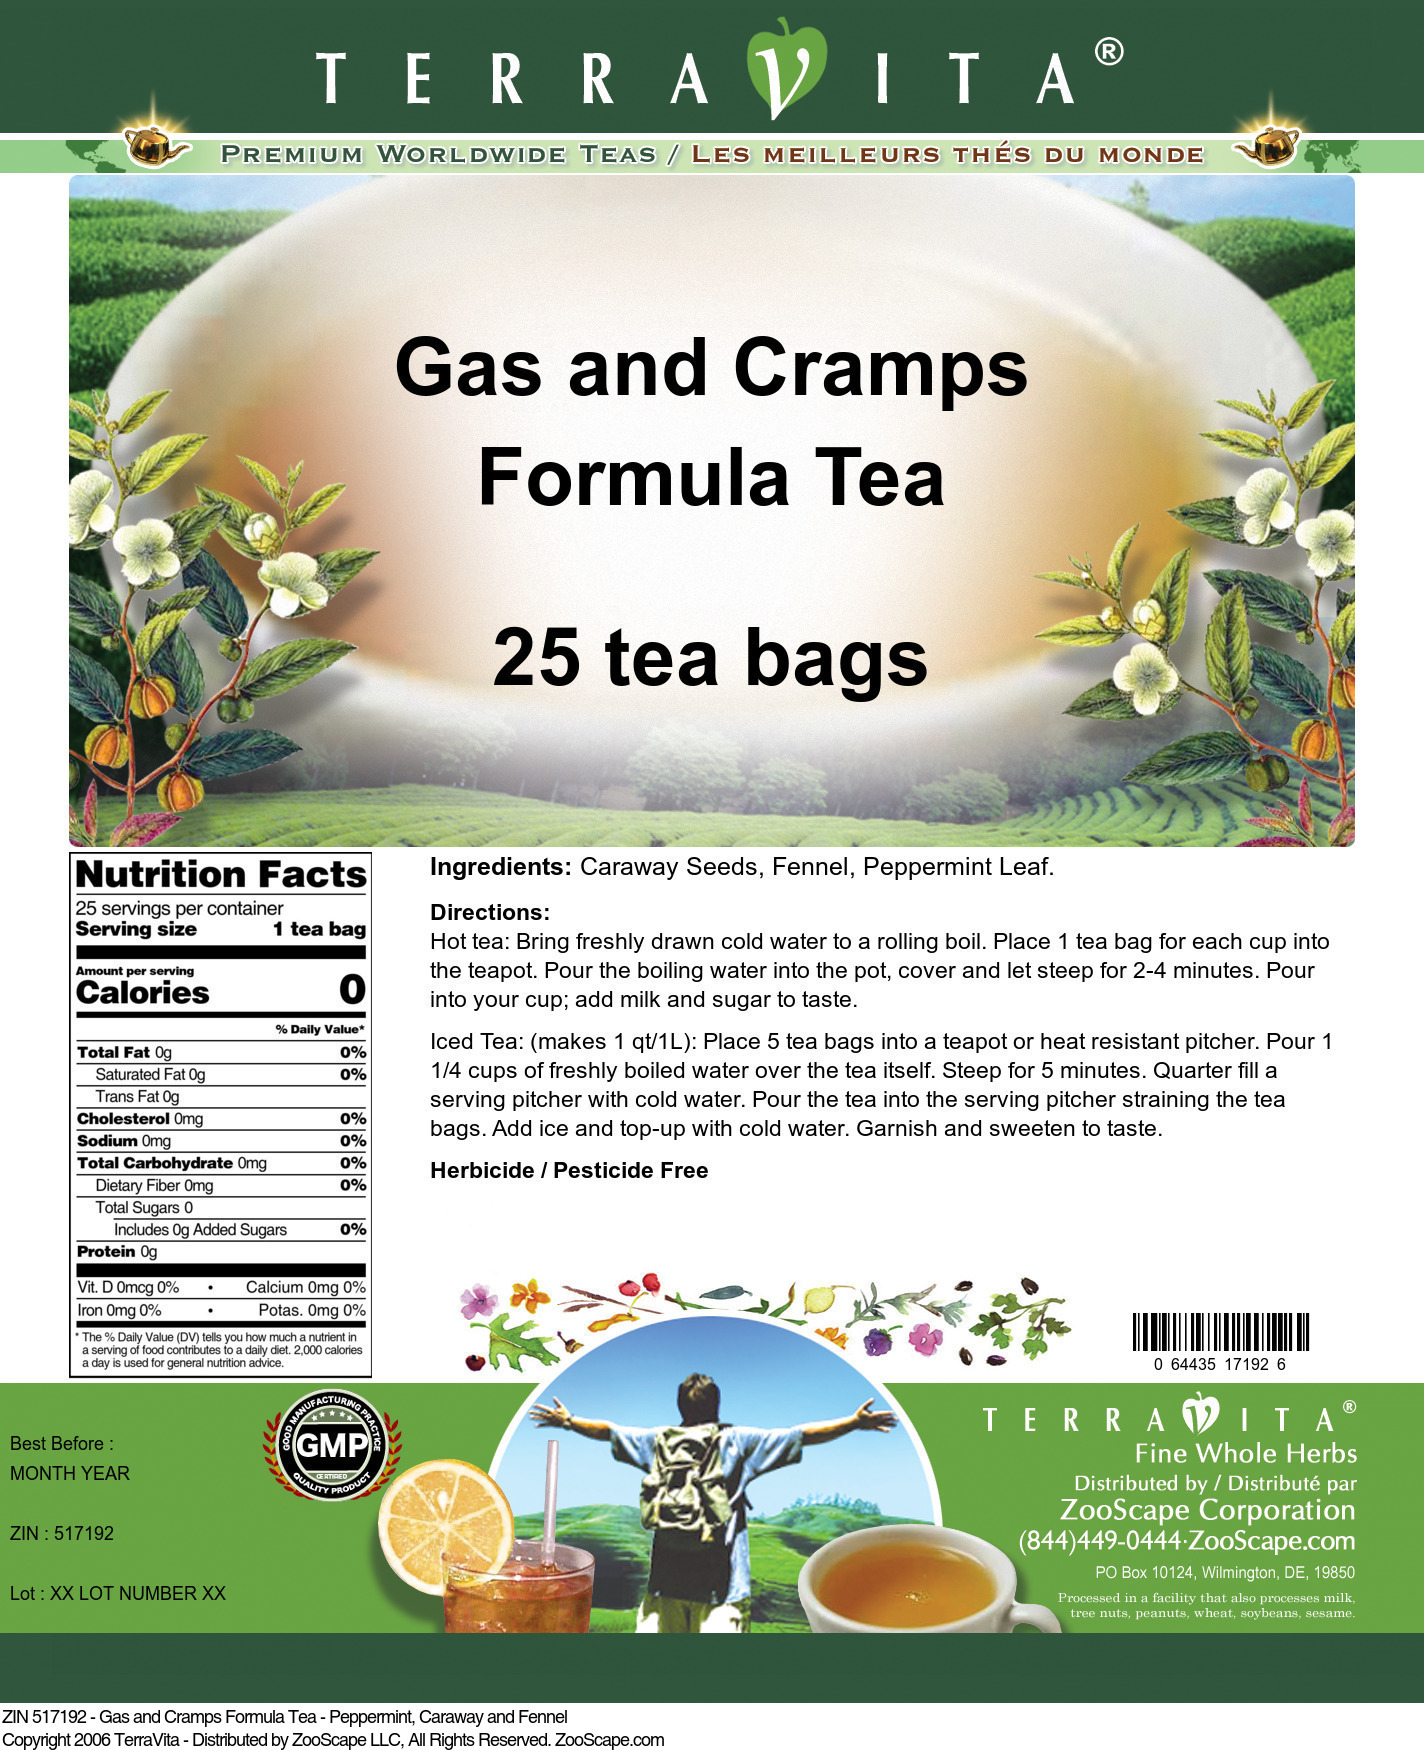 Gas and Cramps Formula Tea - Peppermint, Caraway and Fennel